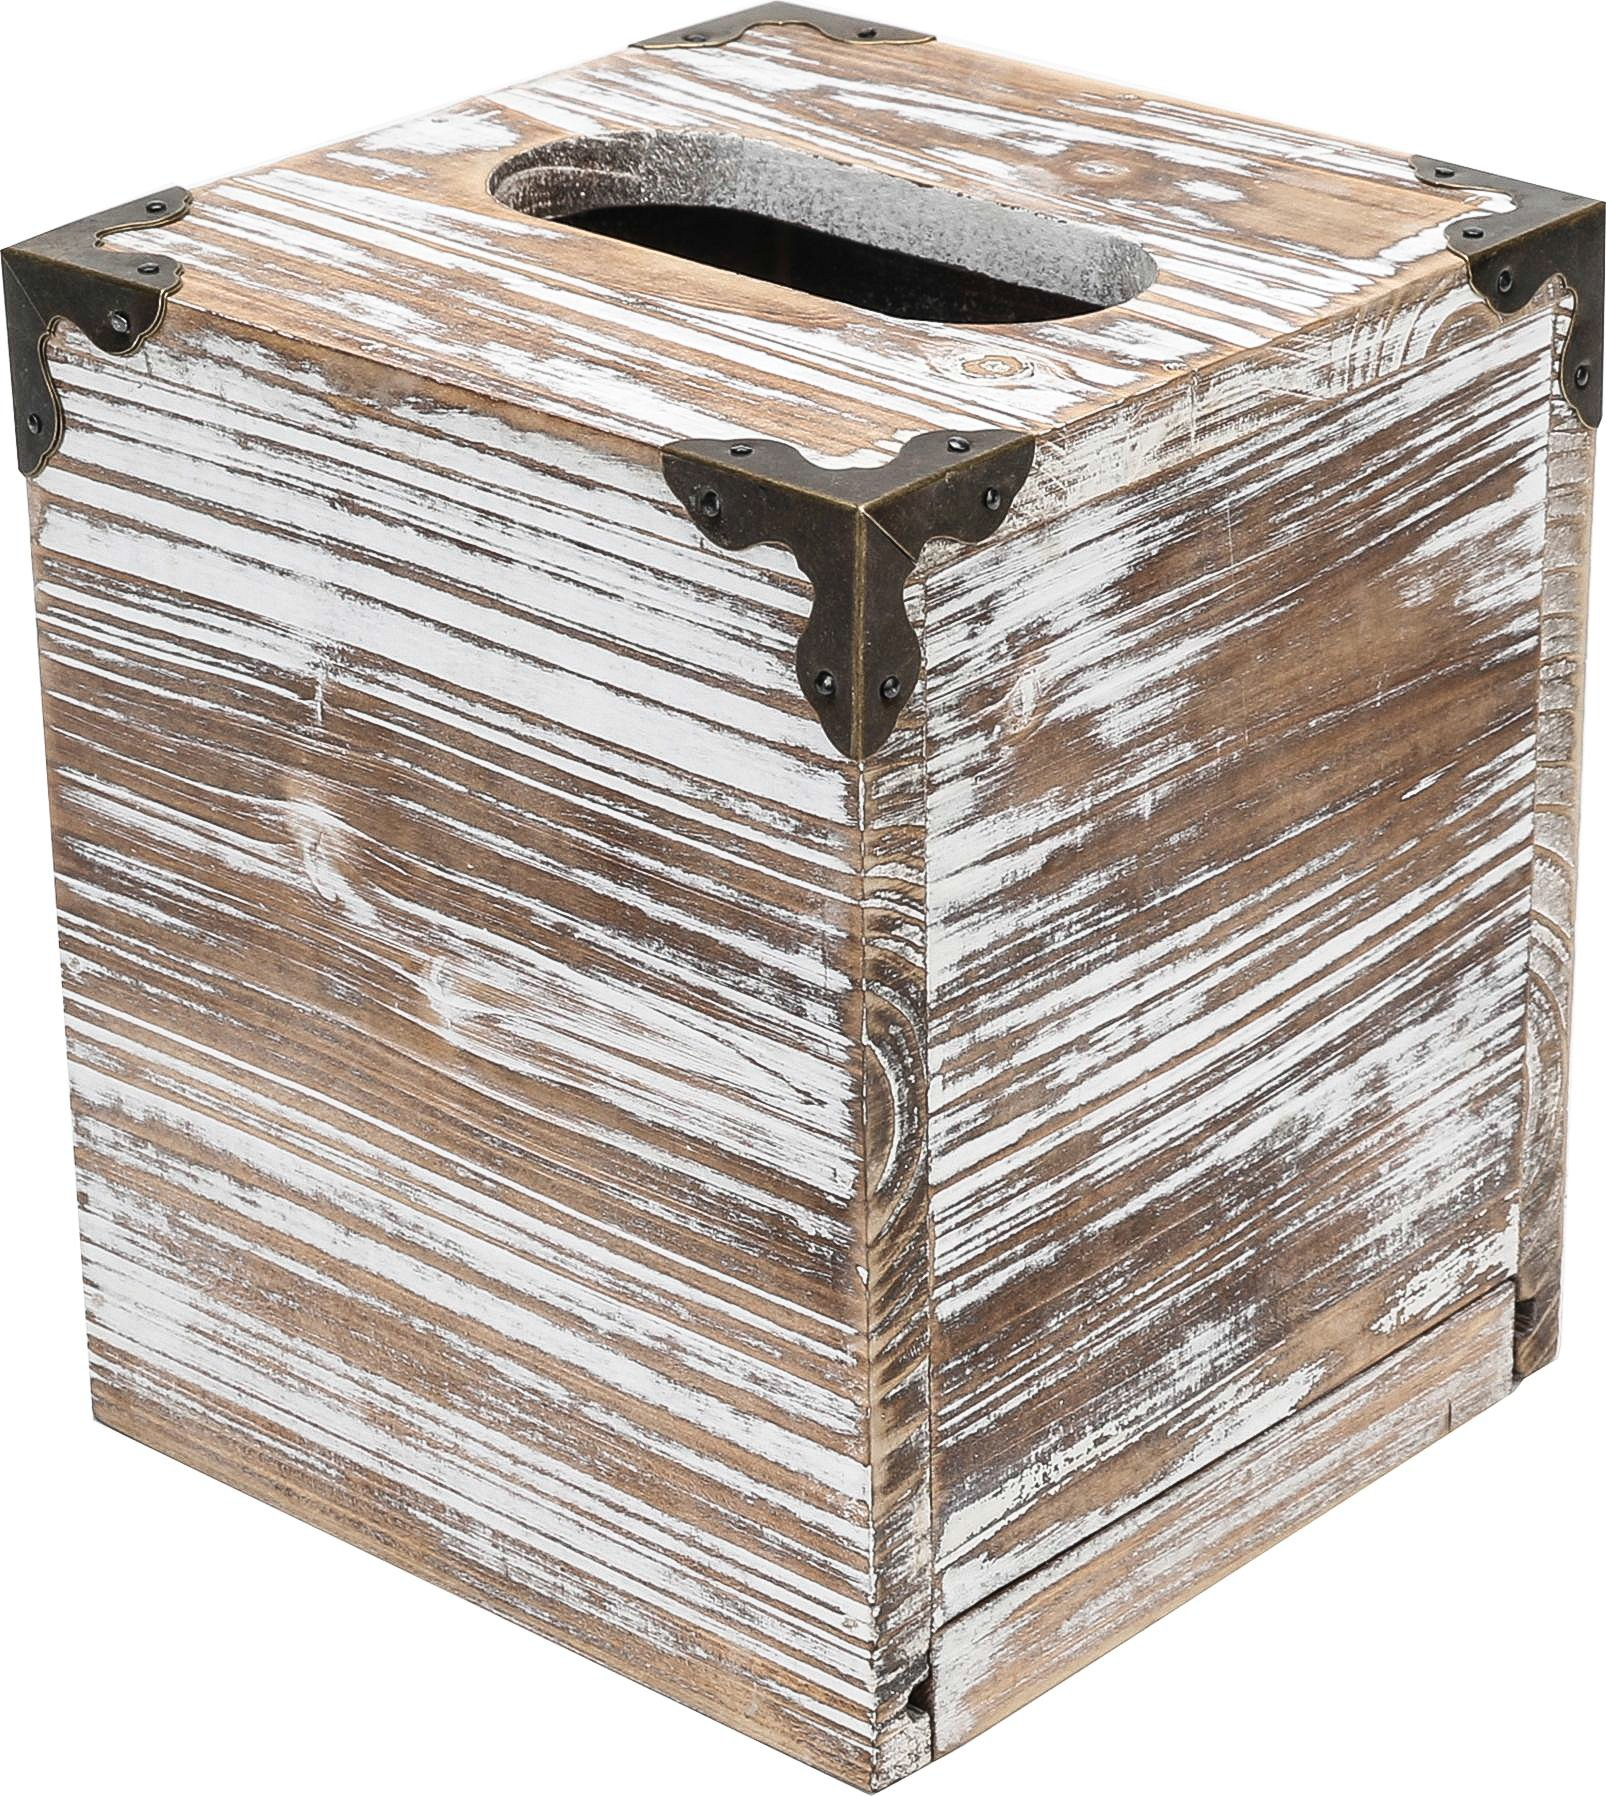 Rusoji Rustic Style Torched Wood Square Facial Tissue Box Holder Cover with Metal Accents, Brown